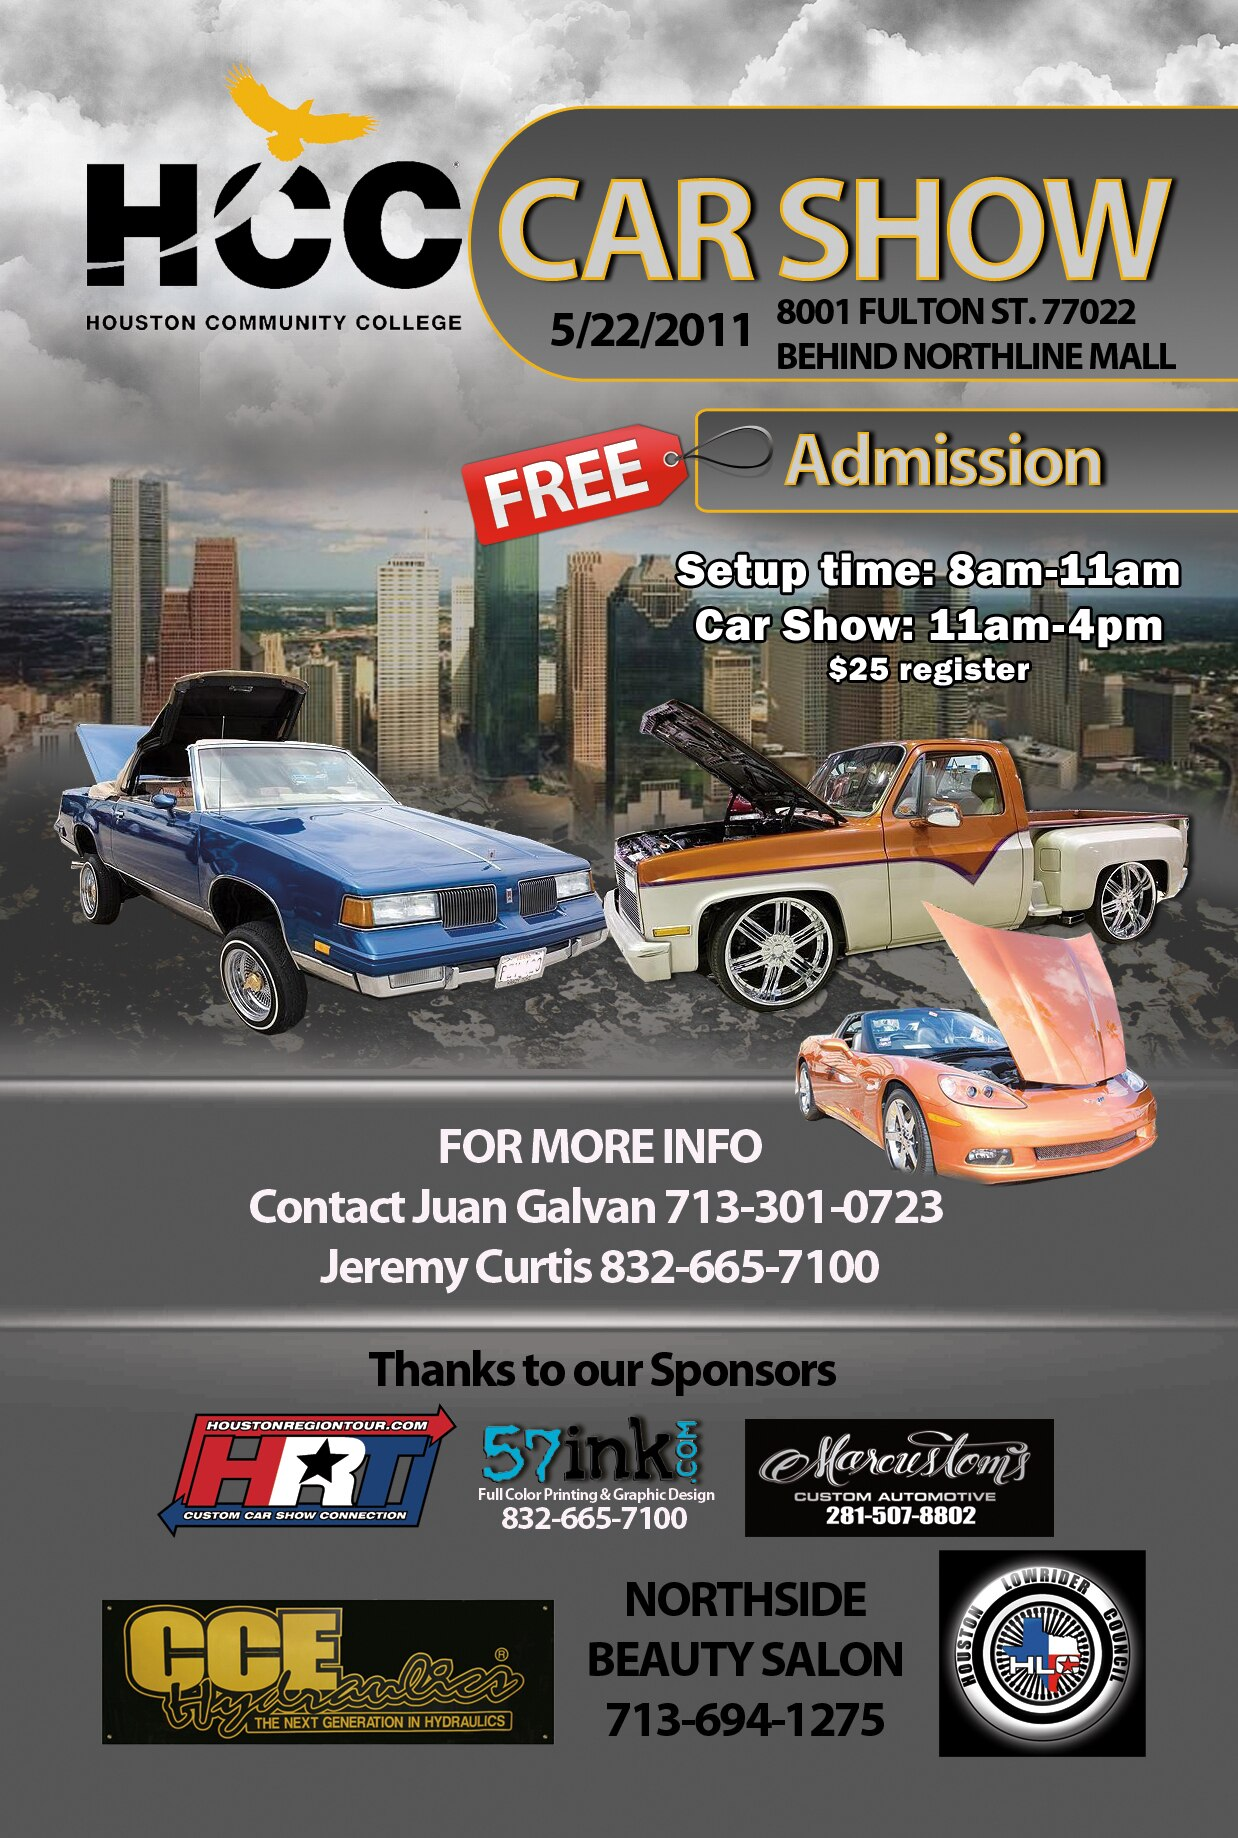 lrmp-1105-01-o-houston-community-college-car-show-flyer1